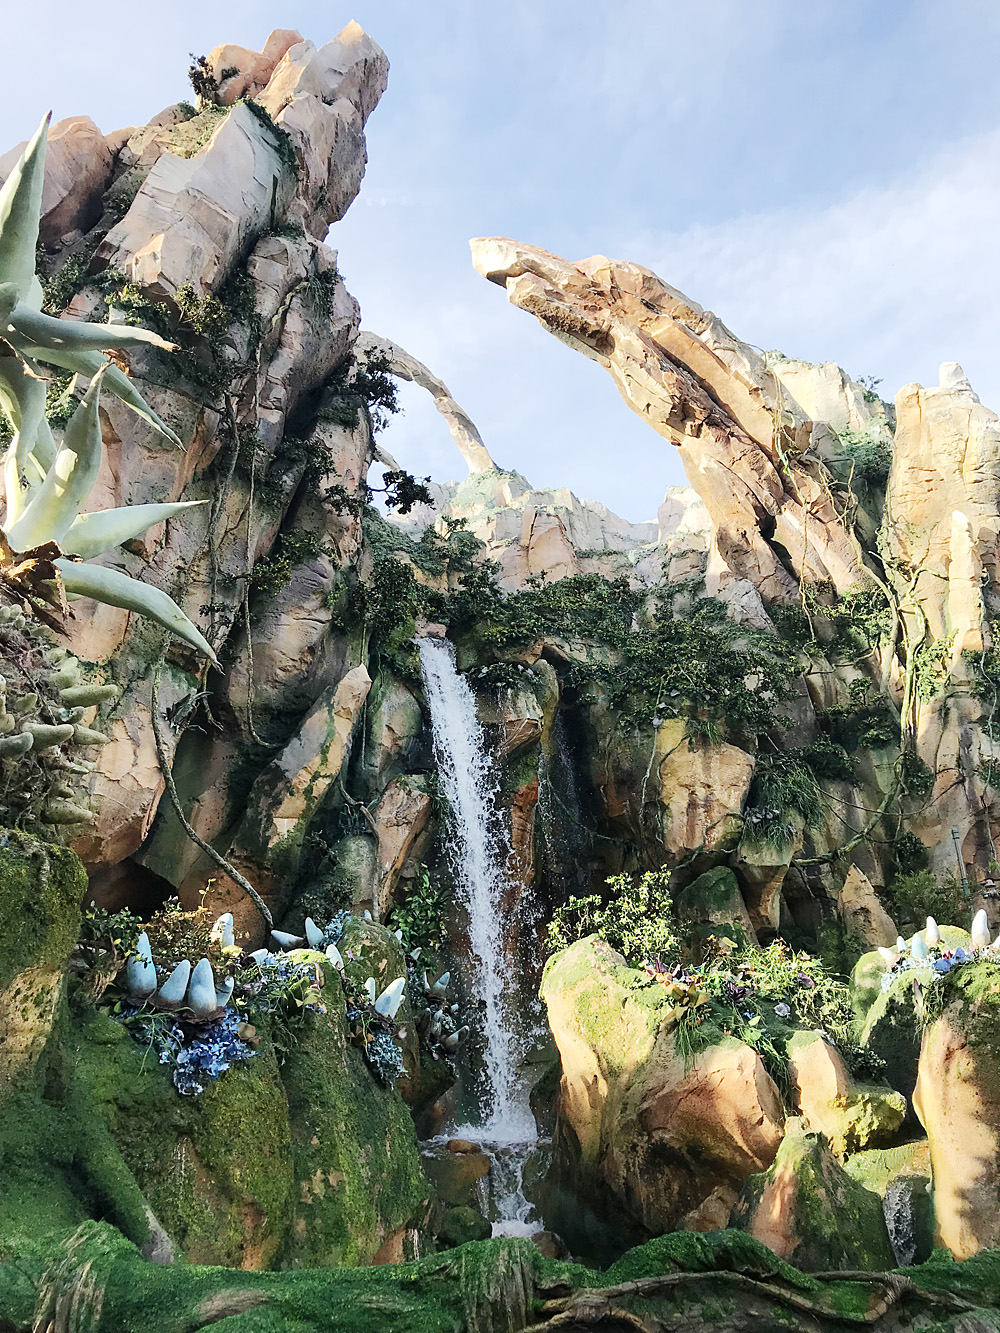 Animal Kingdom Flight of Passage rope drop